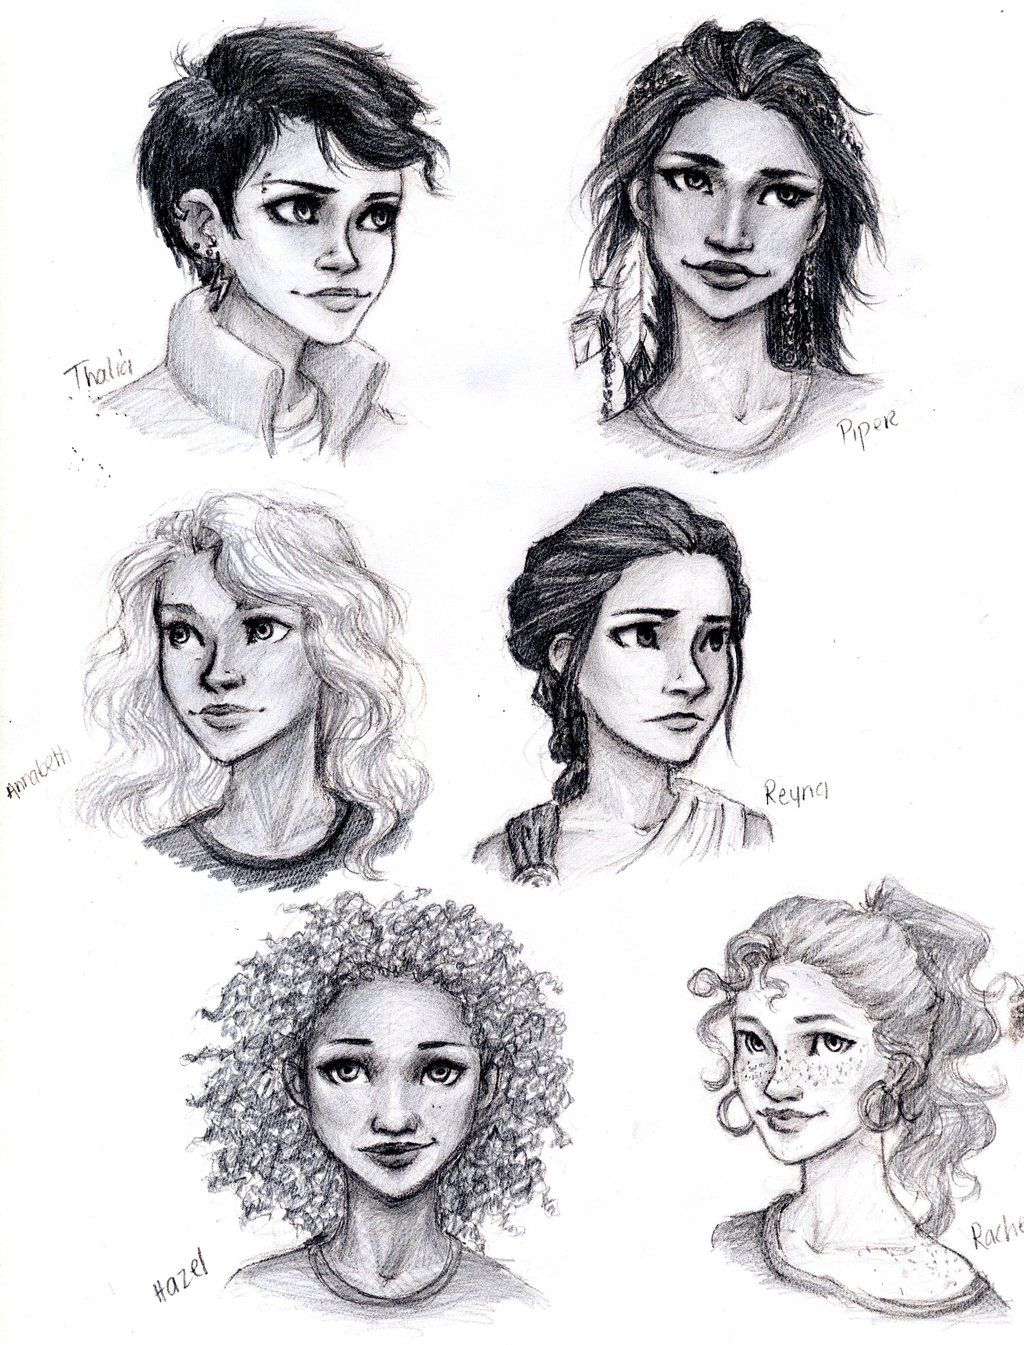 Percy Jackson Girls by meabhdeloughry.deviantart.com on